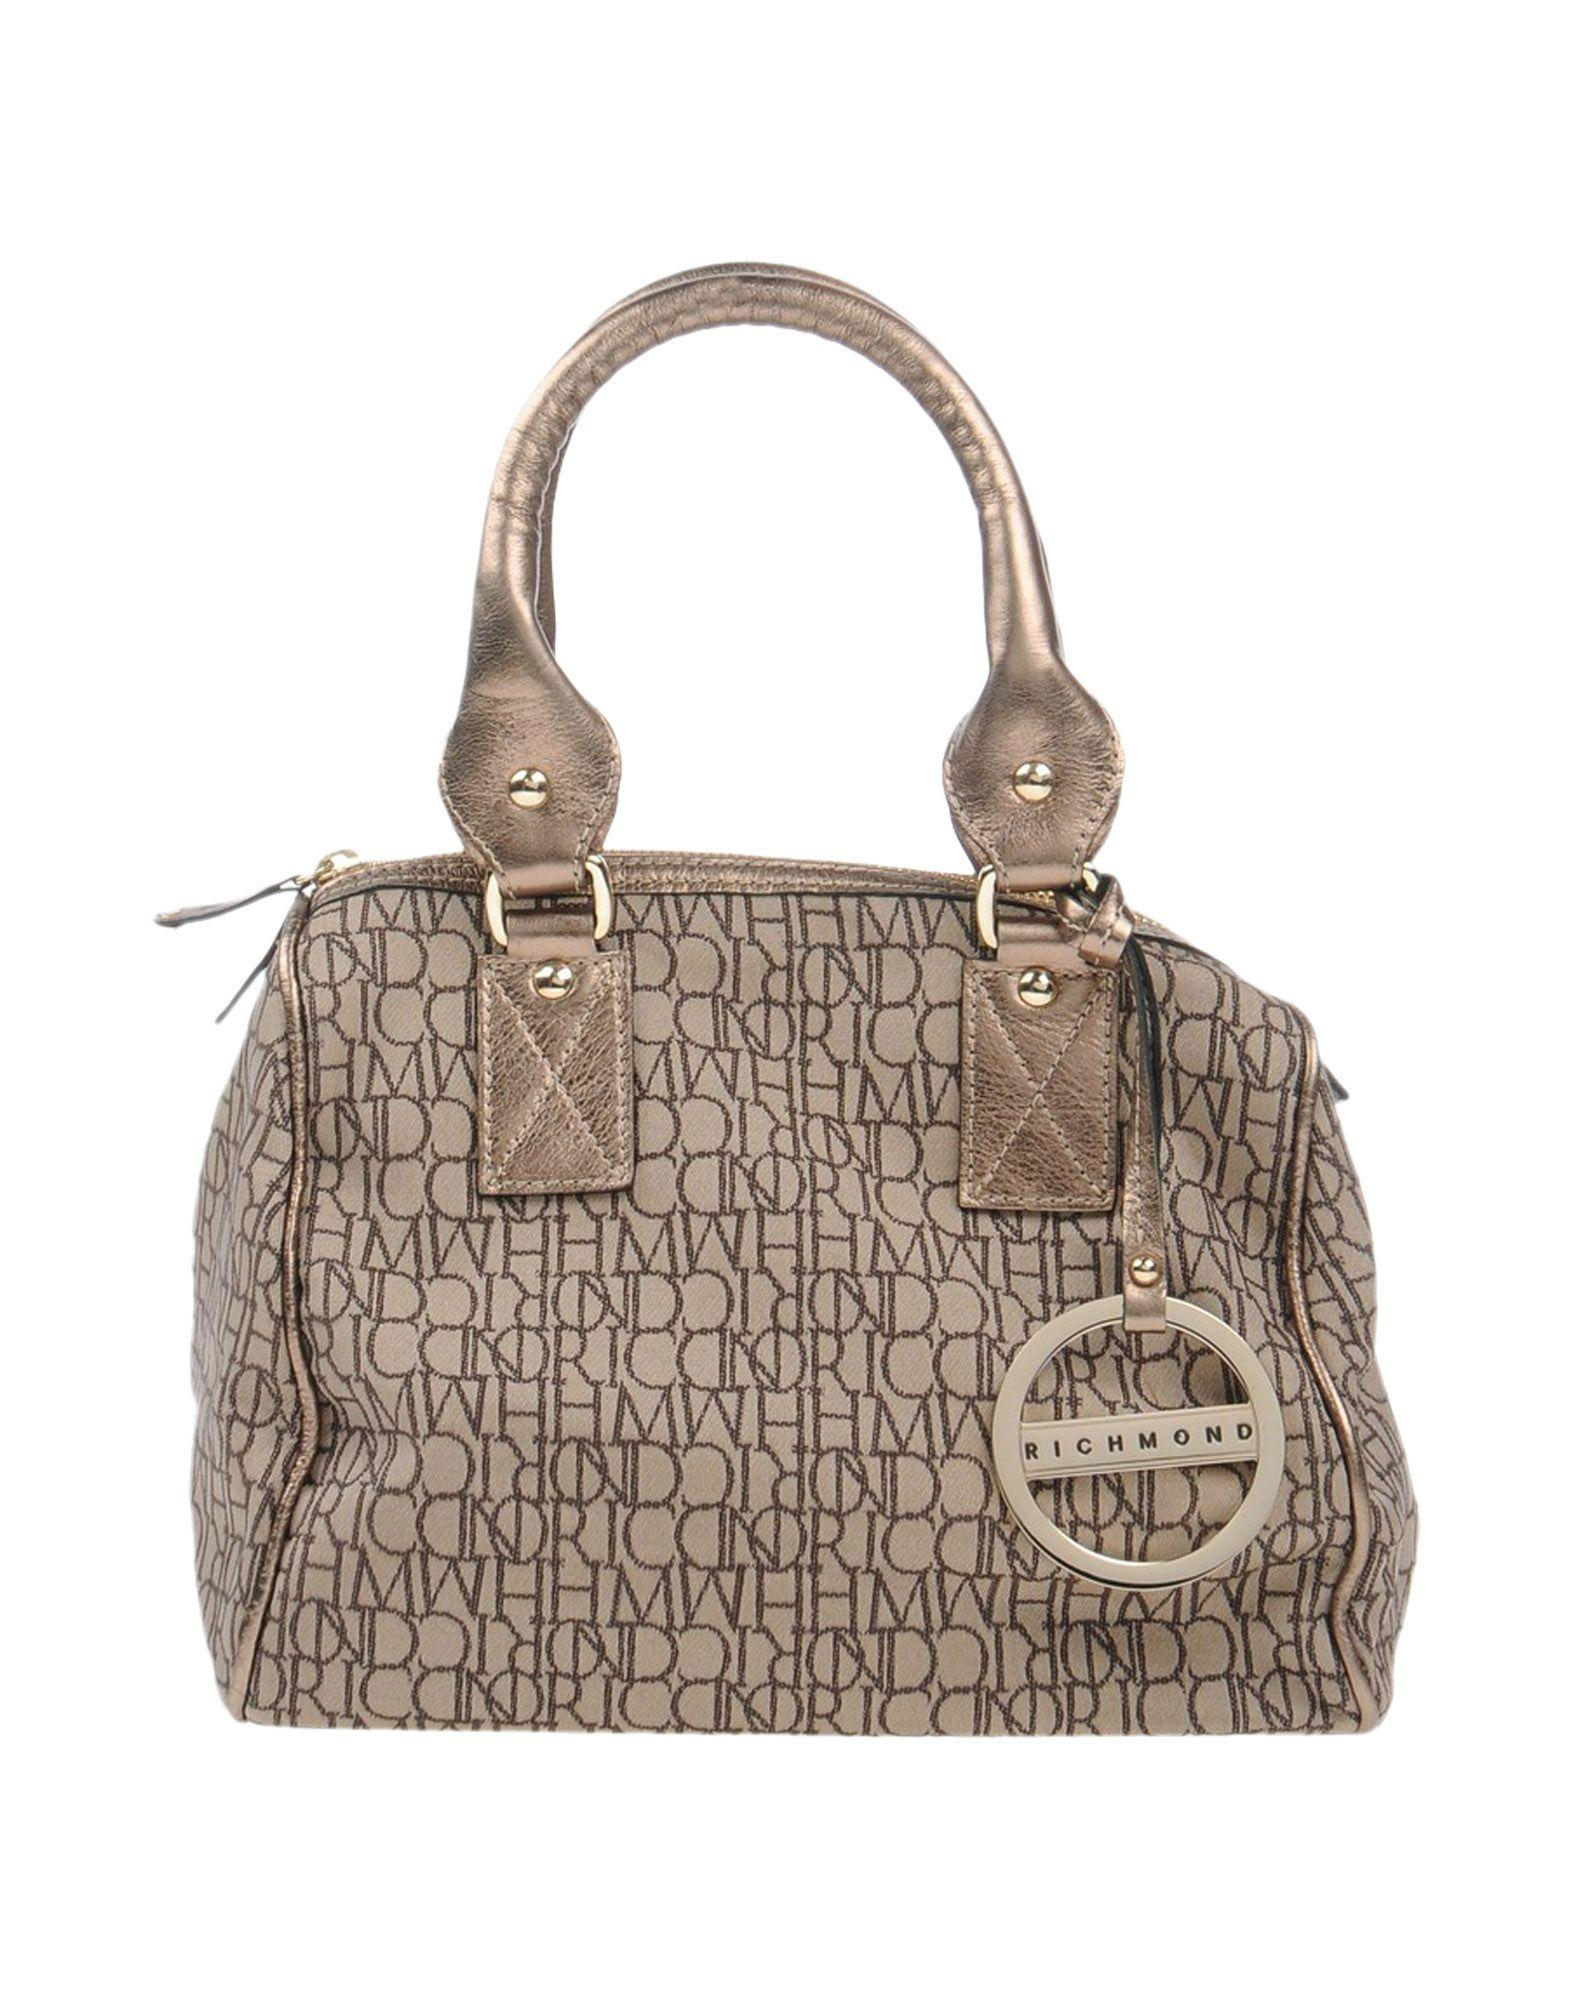 John richmond Handbag in Natural